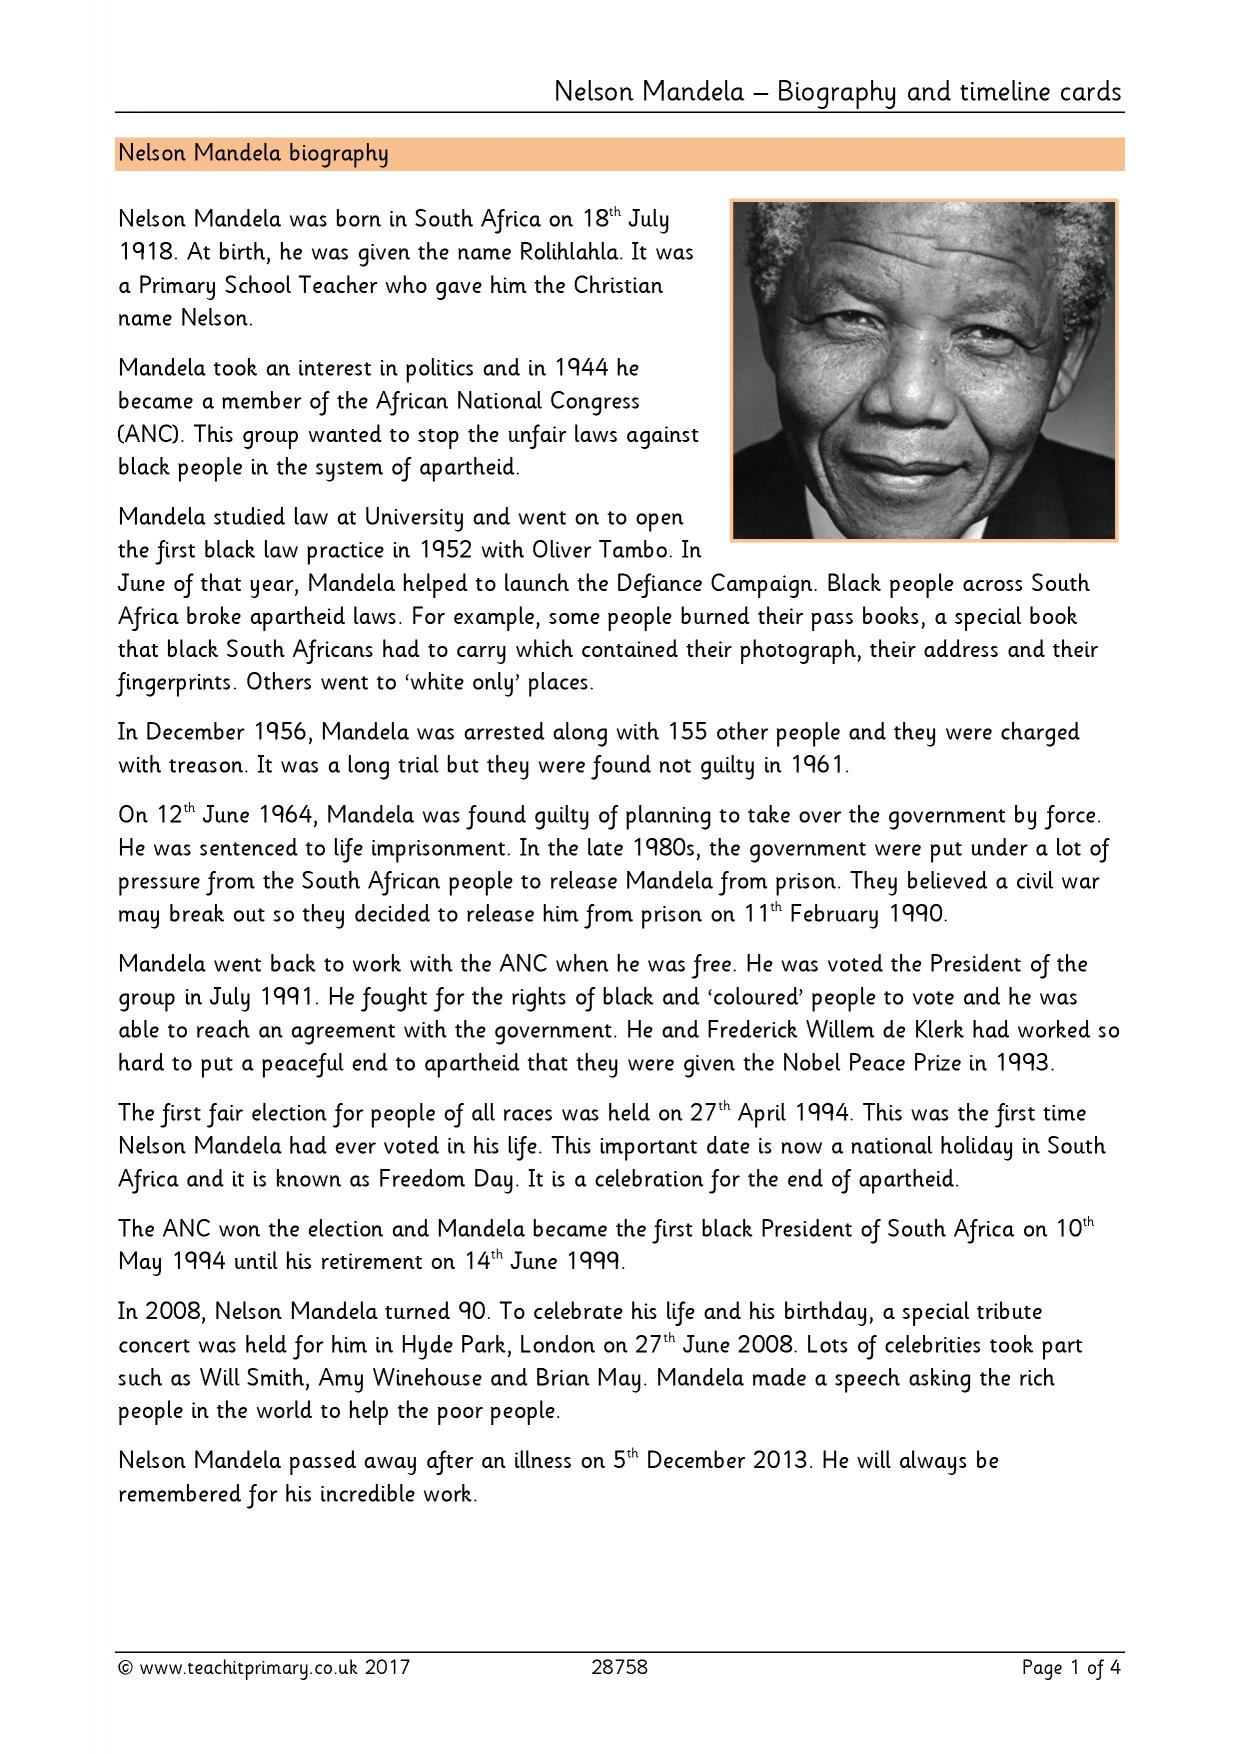 Nelson Mandela Biography And Timeline Cards